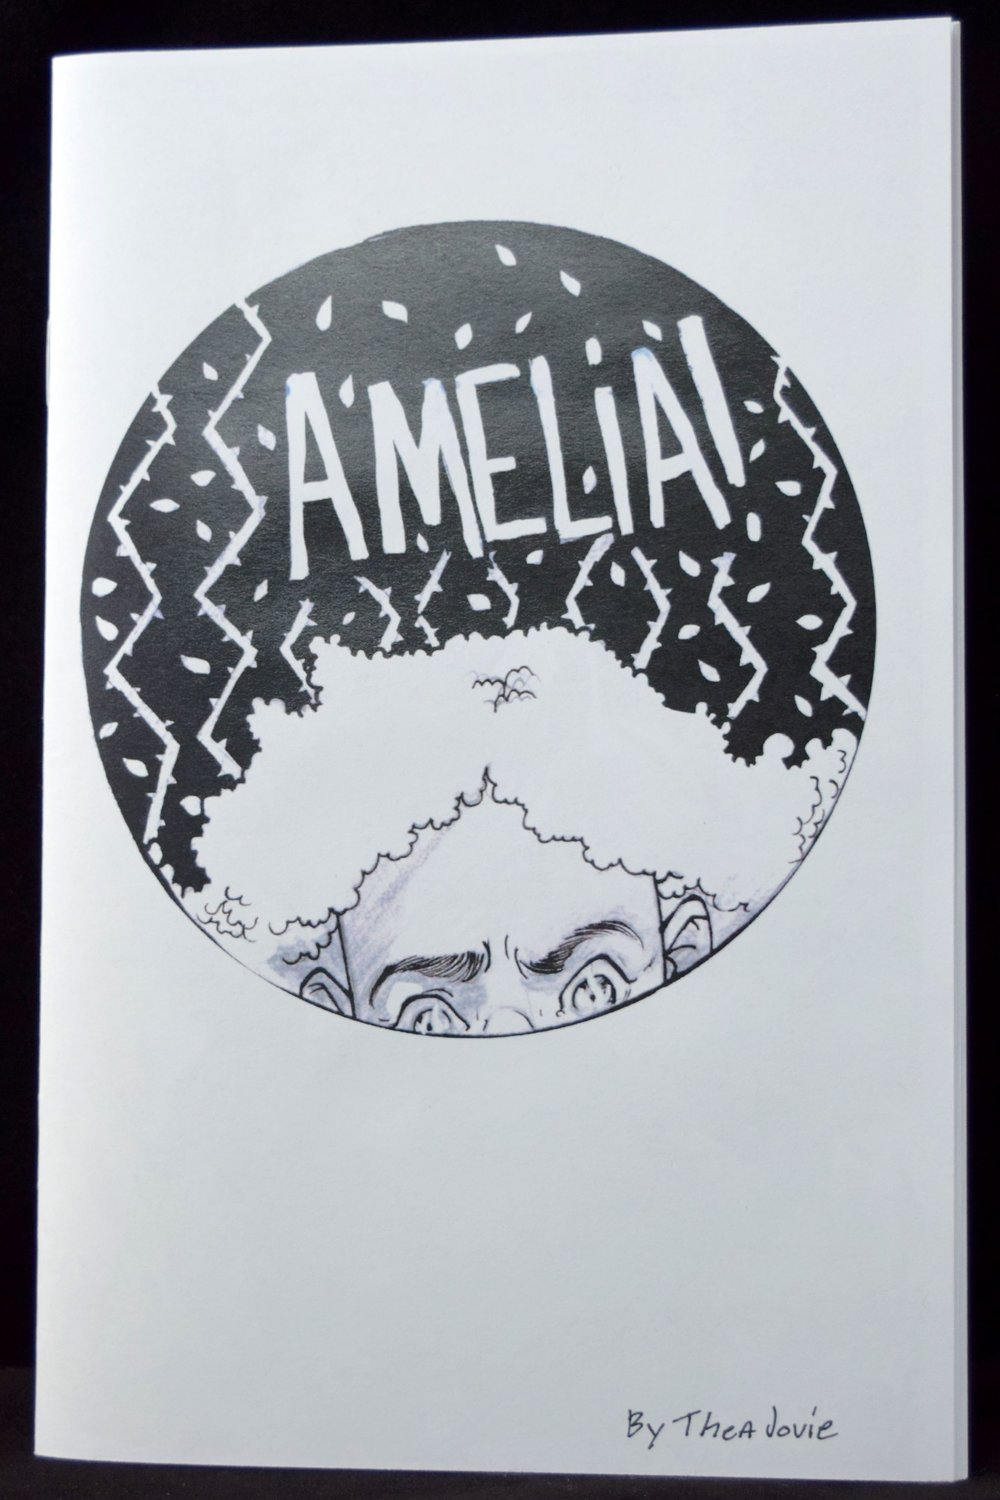 Amelia (2018) #1 by Thea J. Hunt. (front cover)